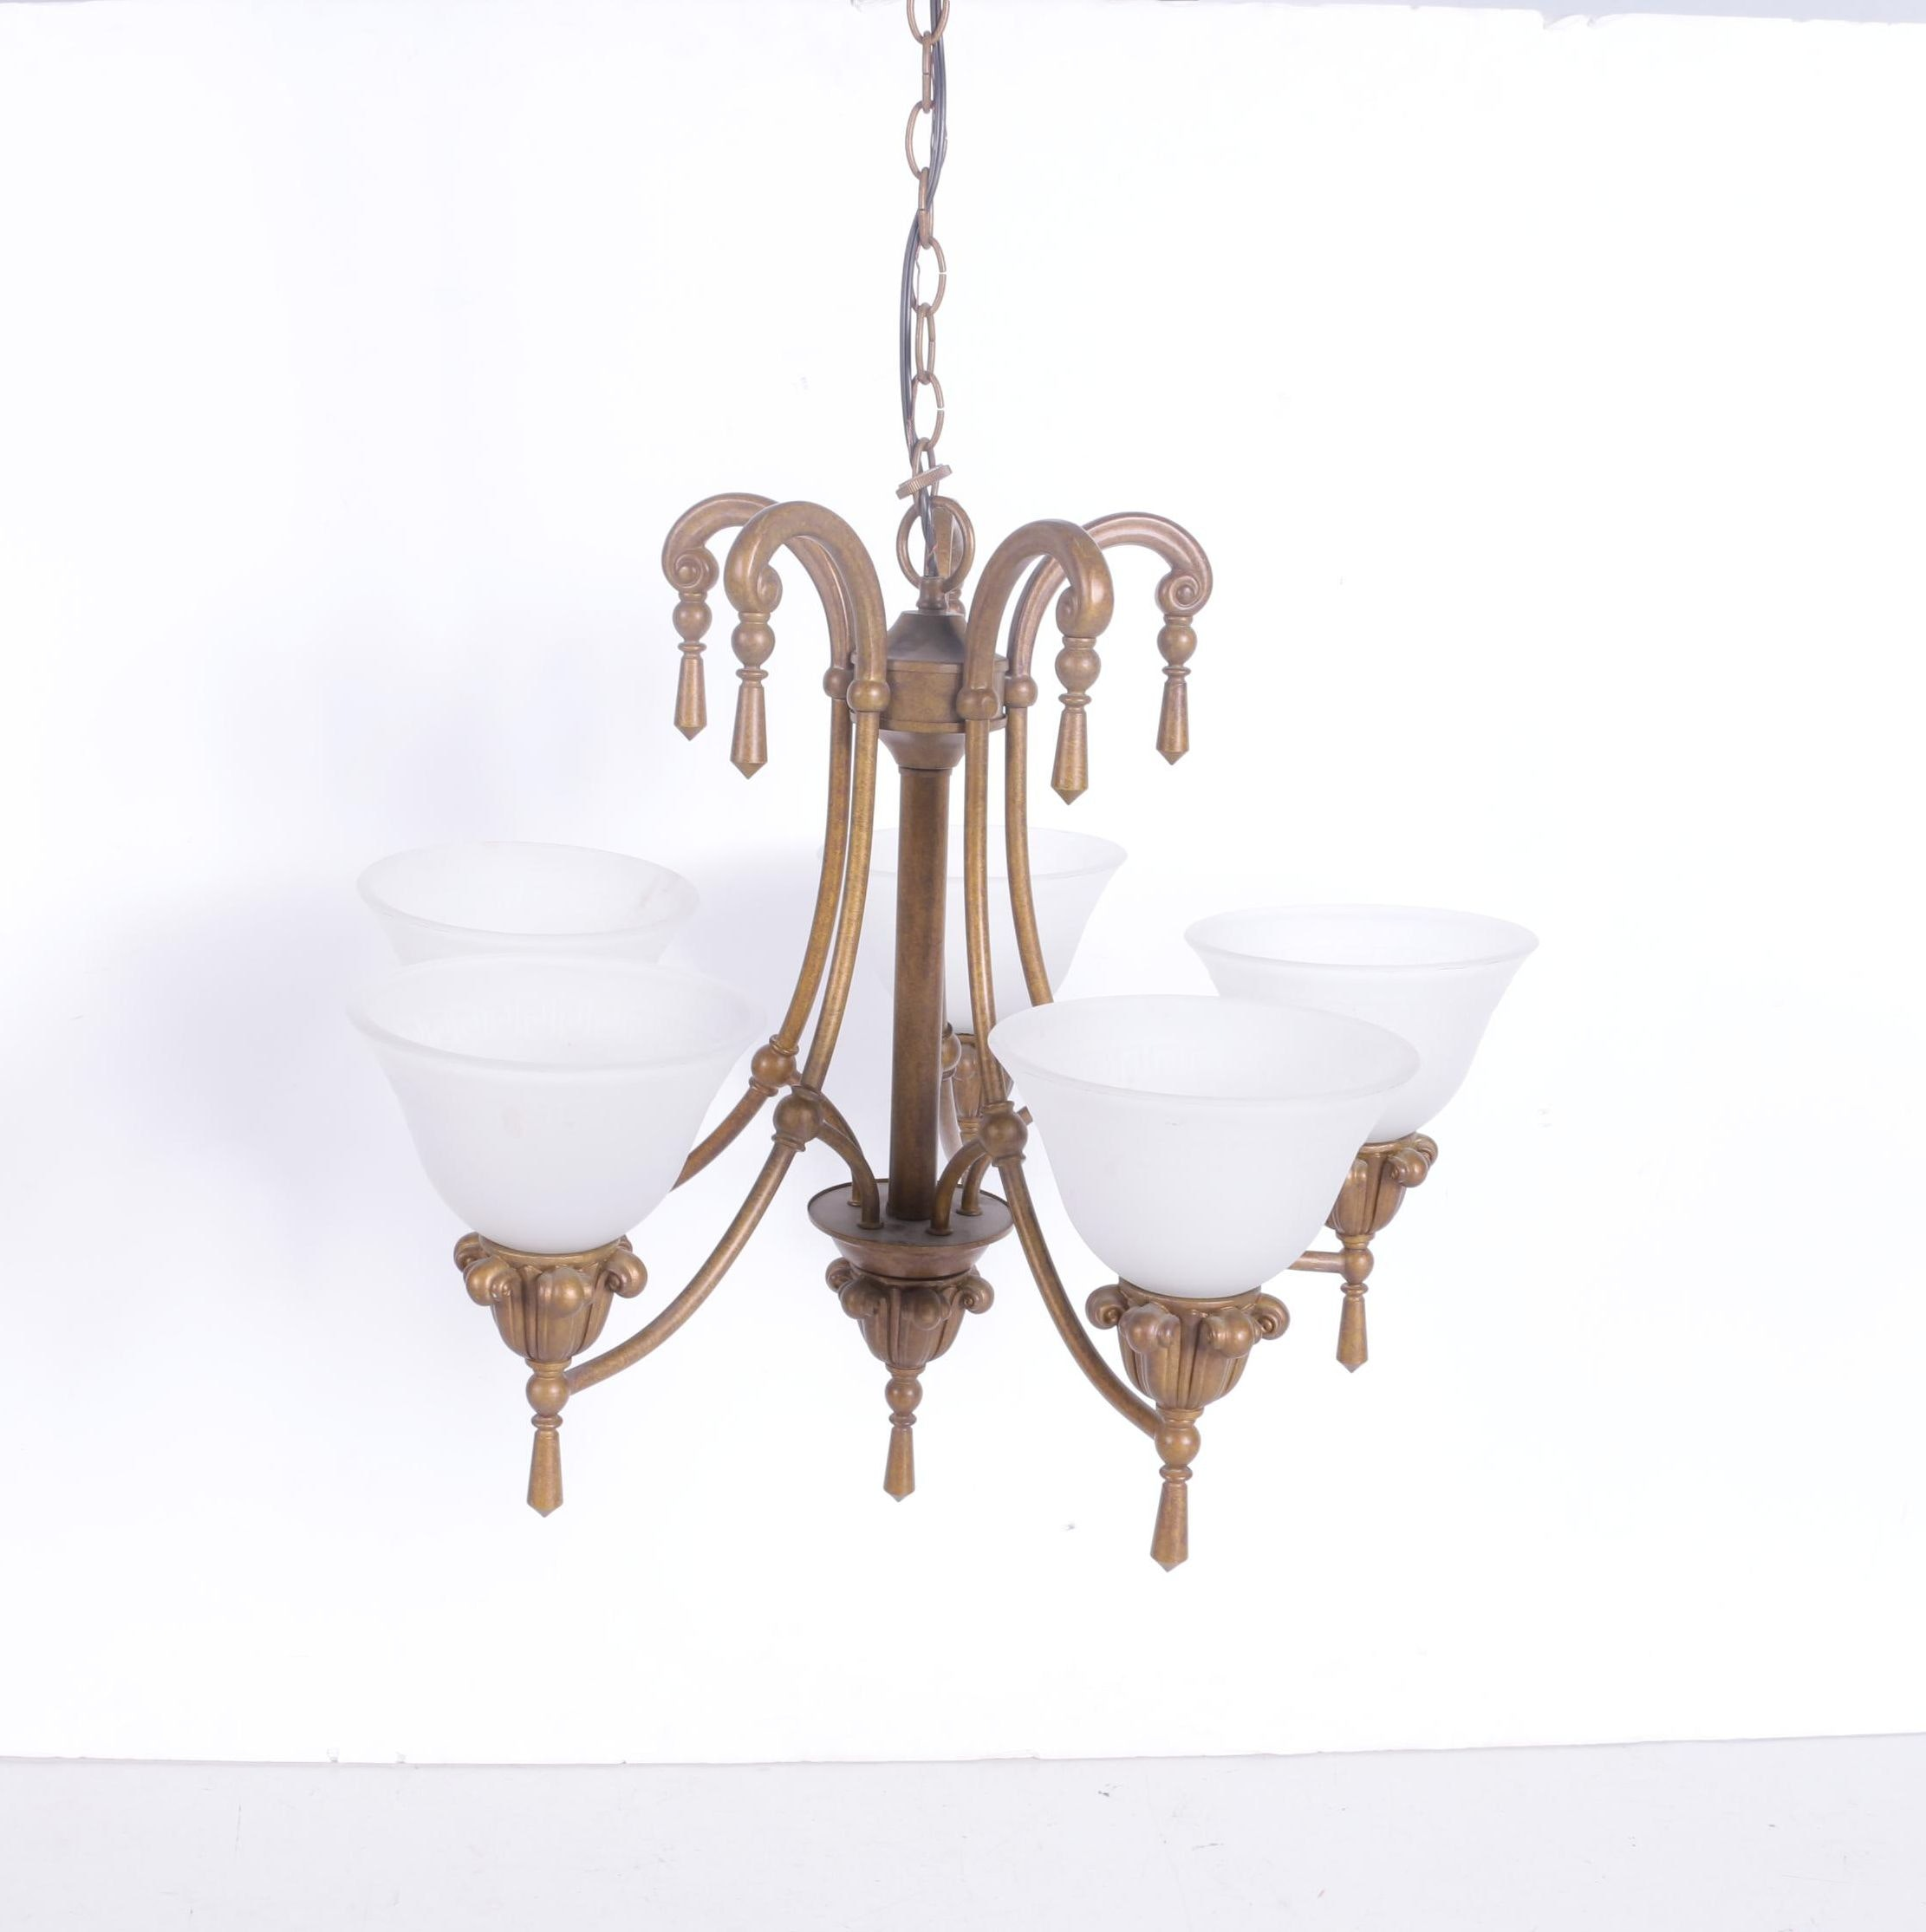 Hanging Light Fixture with Glass Shades